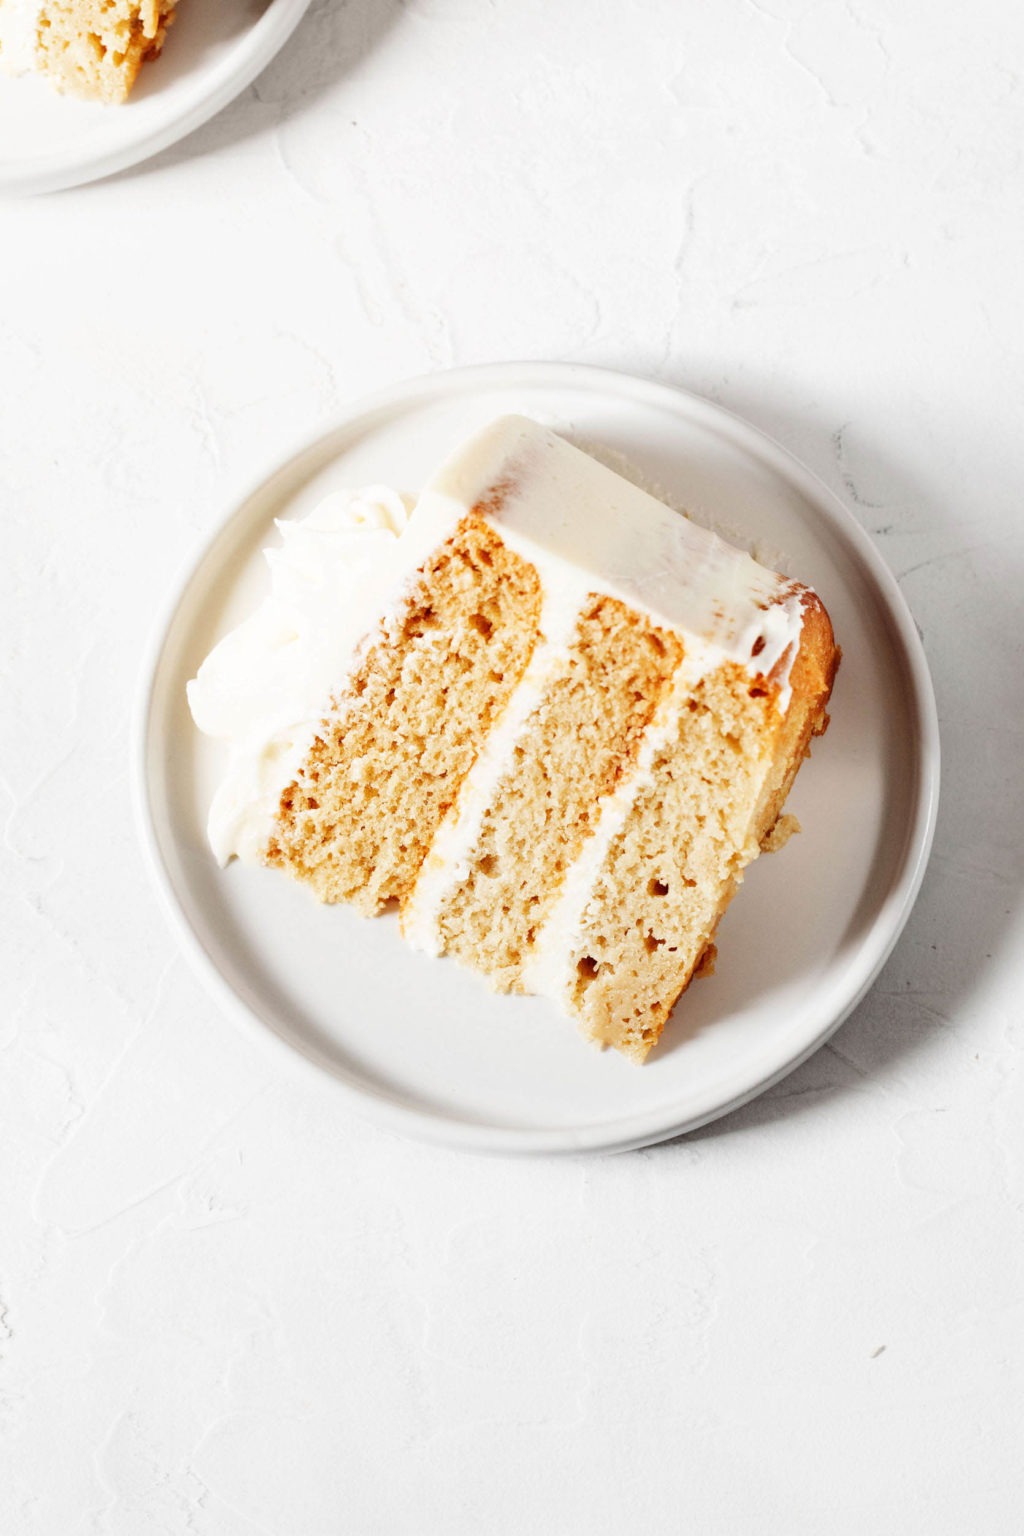 An overhead image of a slice of vegan vanilla cake, which has been sliced and placed onto a round dessert plate.